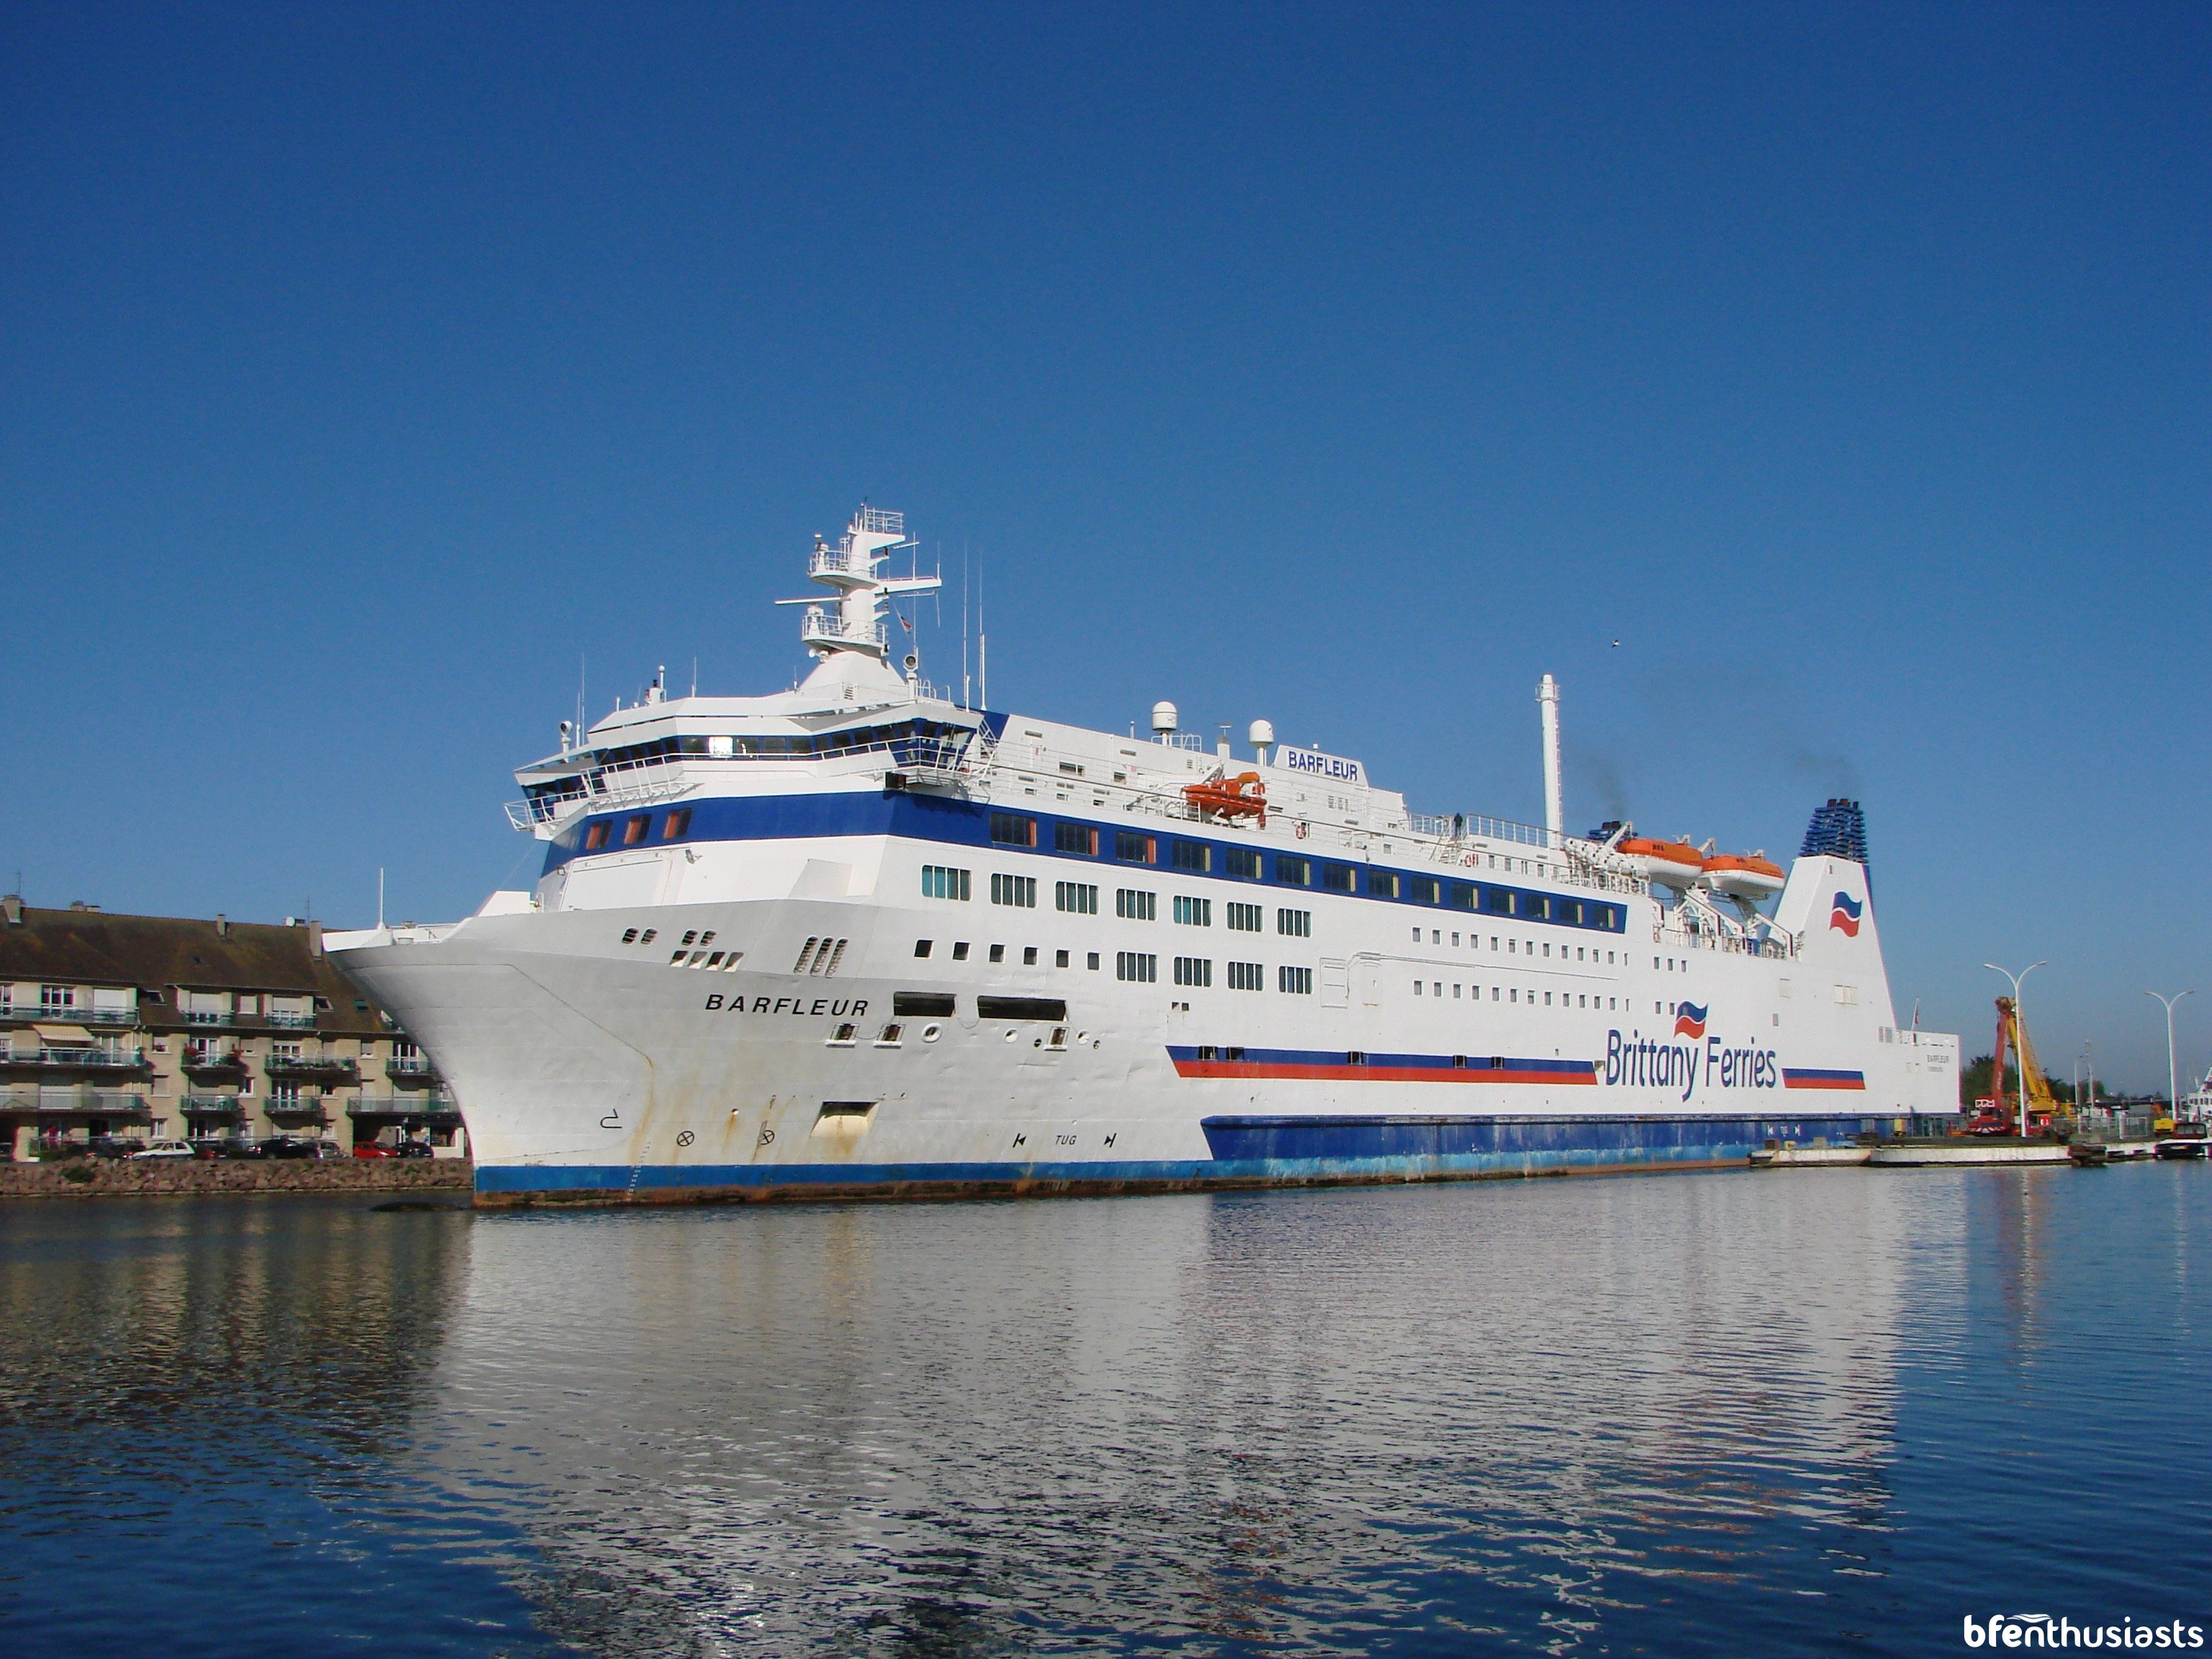 Barfleur enters the Caen Canal